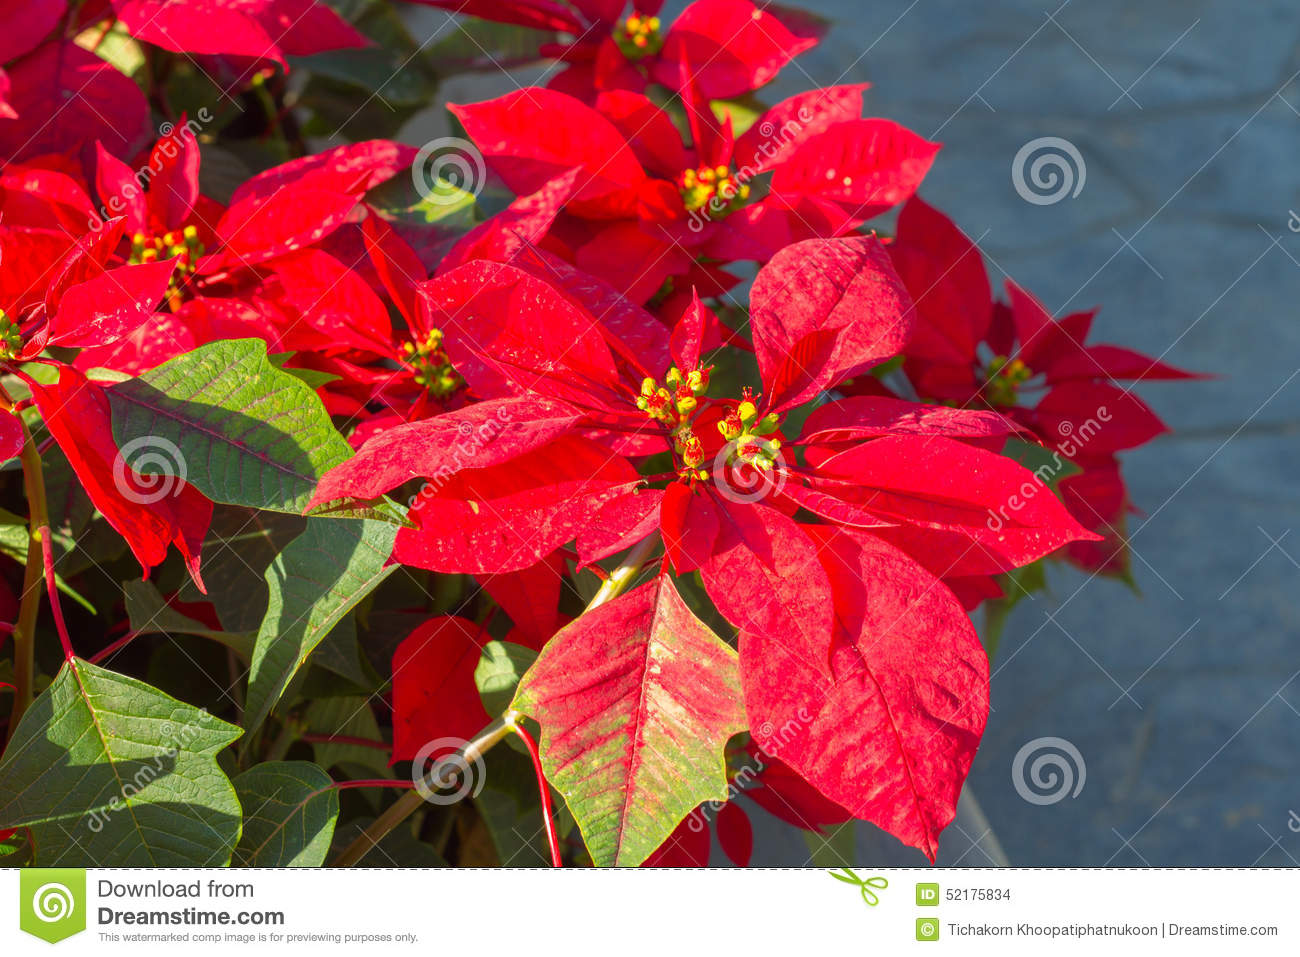 or red poinsettia - photo #40